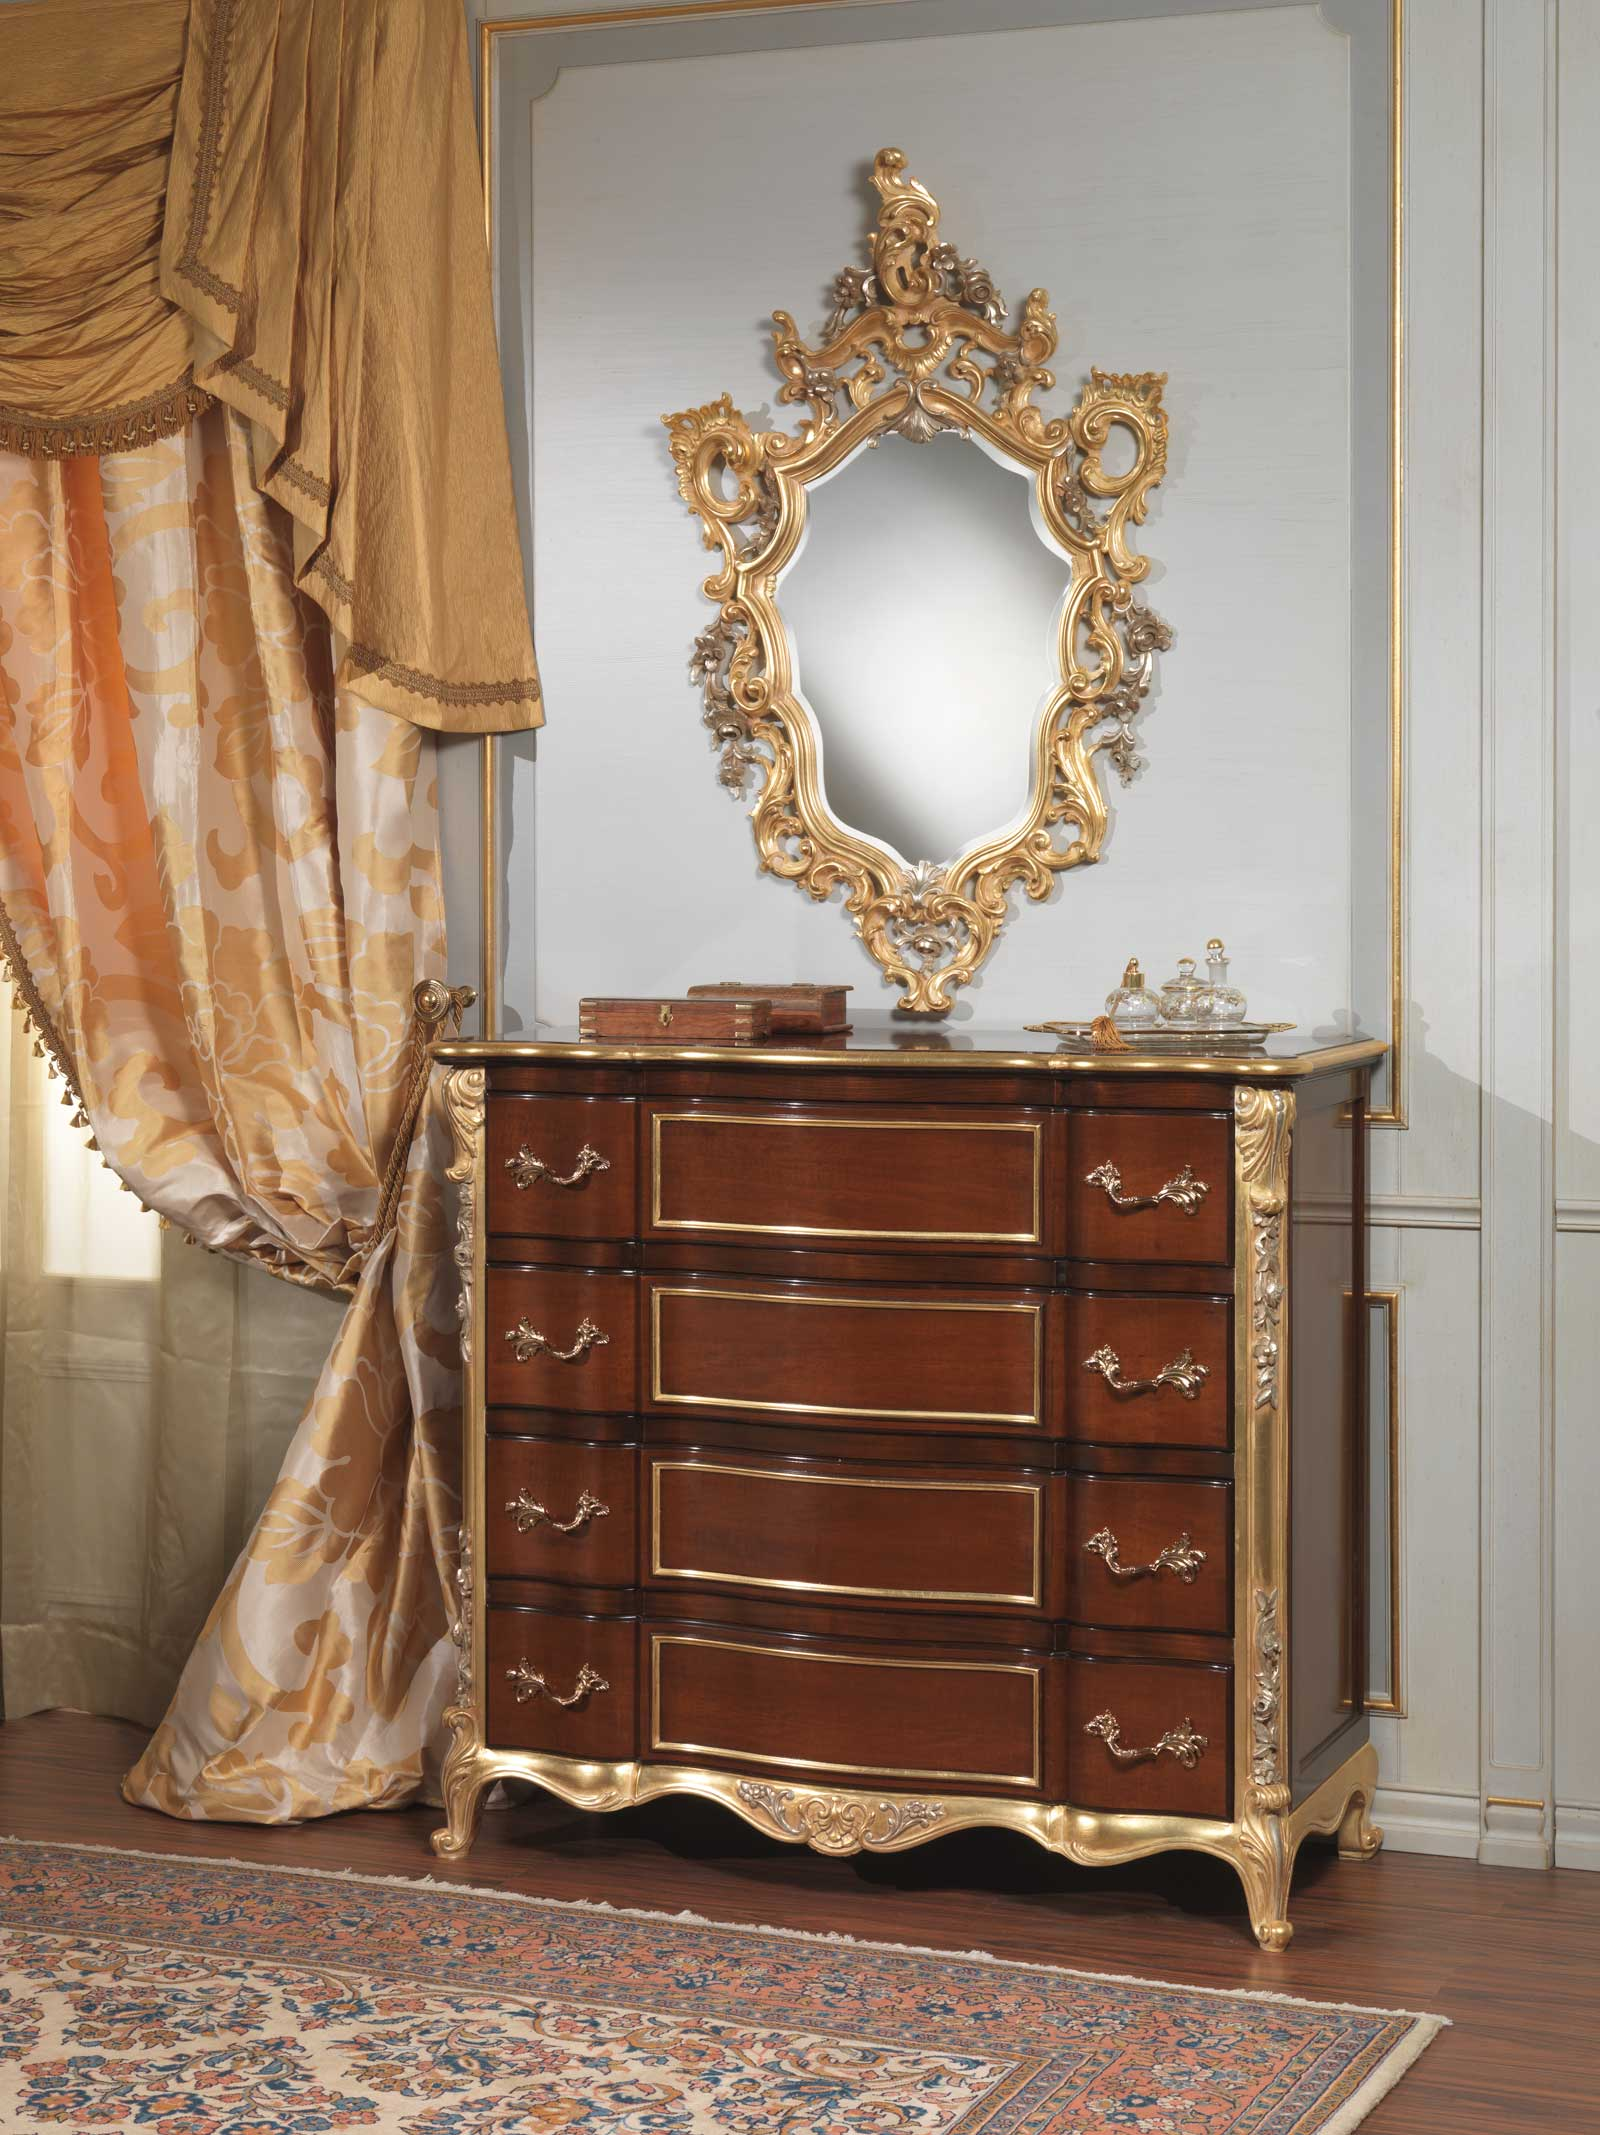 Classic italian bedroom 18th century chest of drawers and wall mirror  Vimercati Classic Furniture